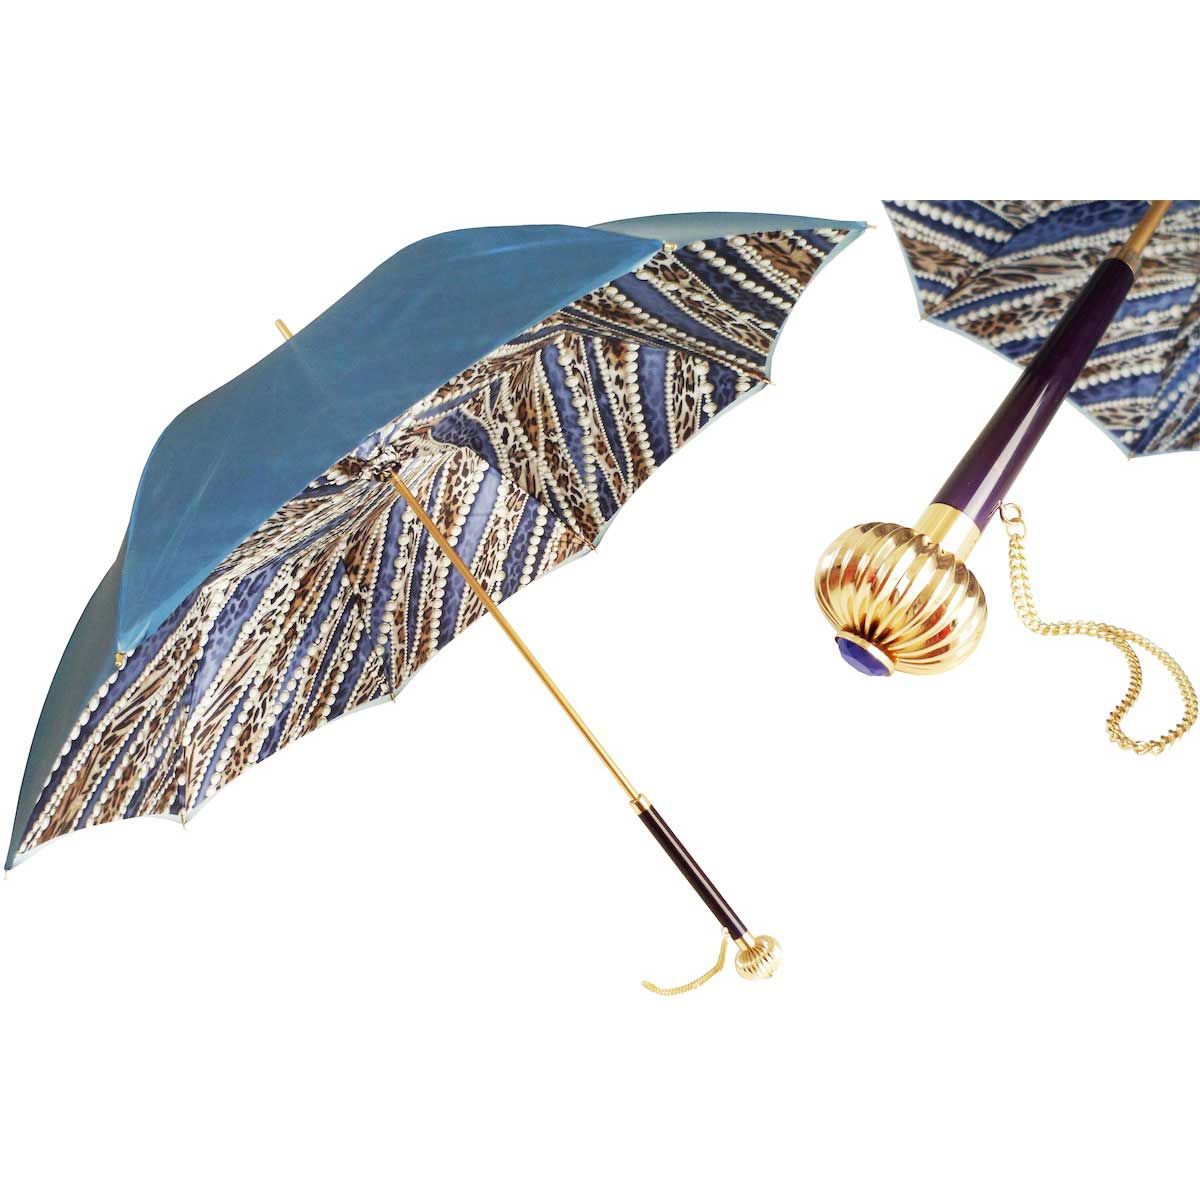 Pasotti Blue Fantastic Pearls & Cheetah Print Animalier Women's Umbrella